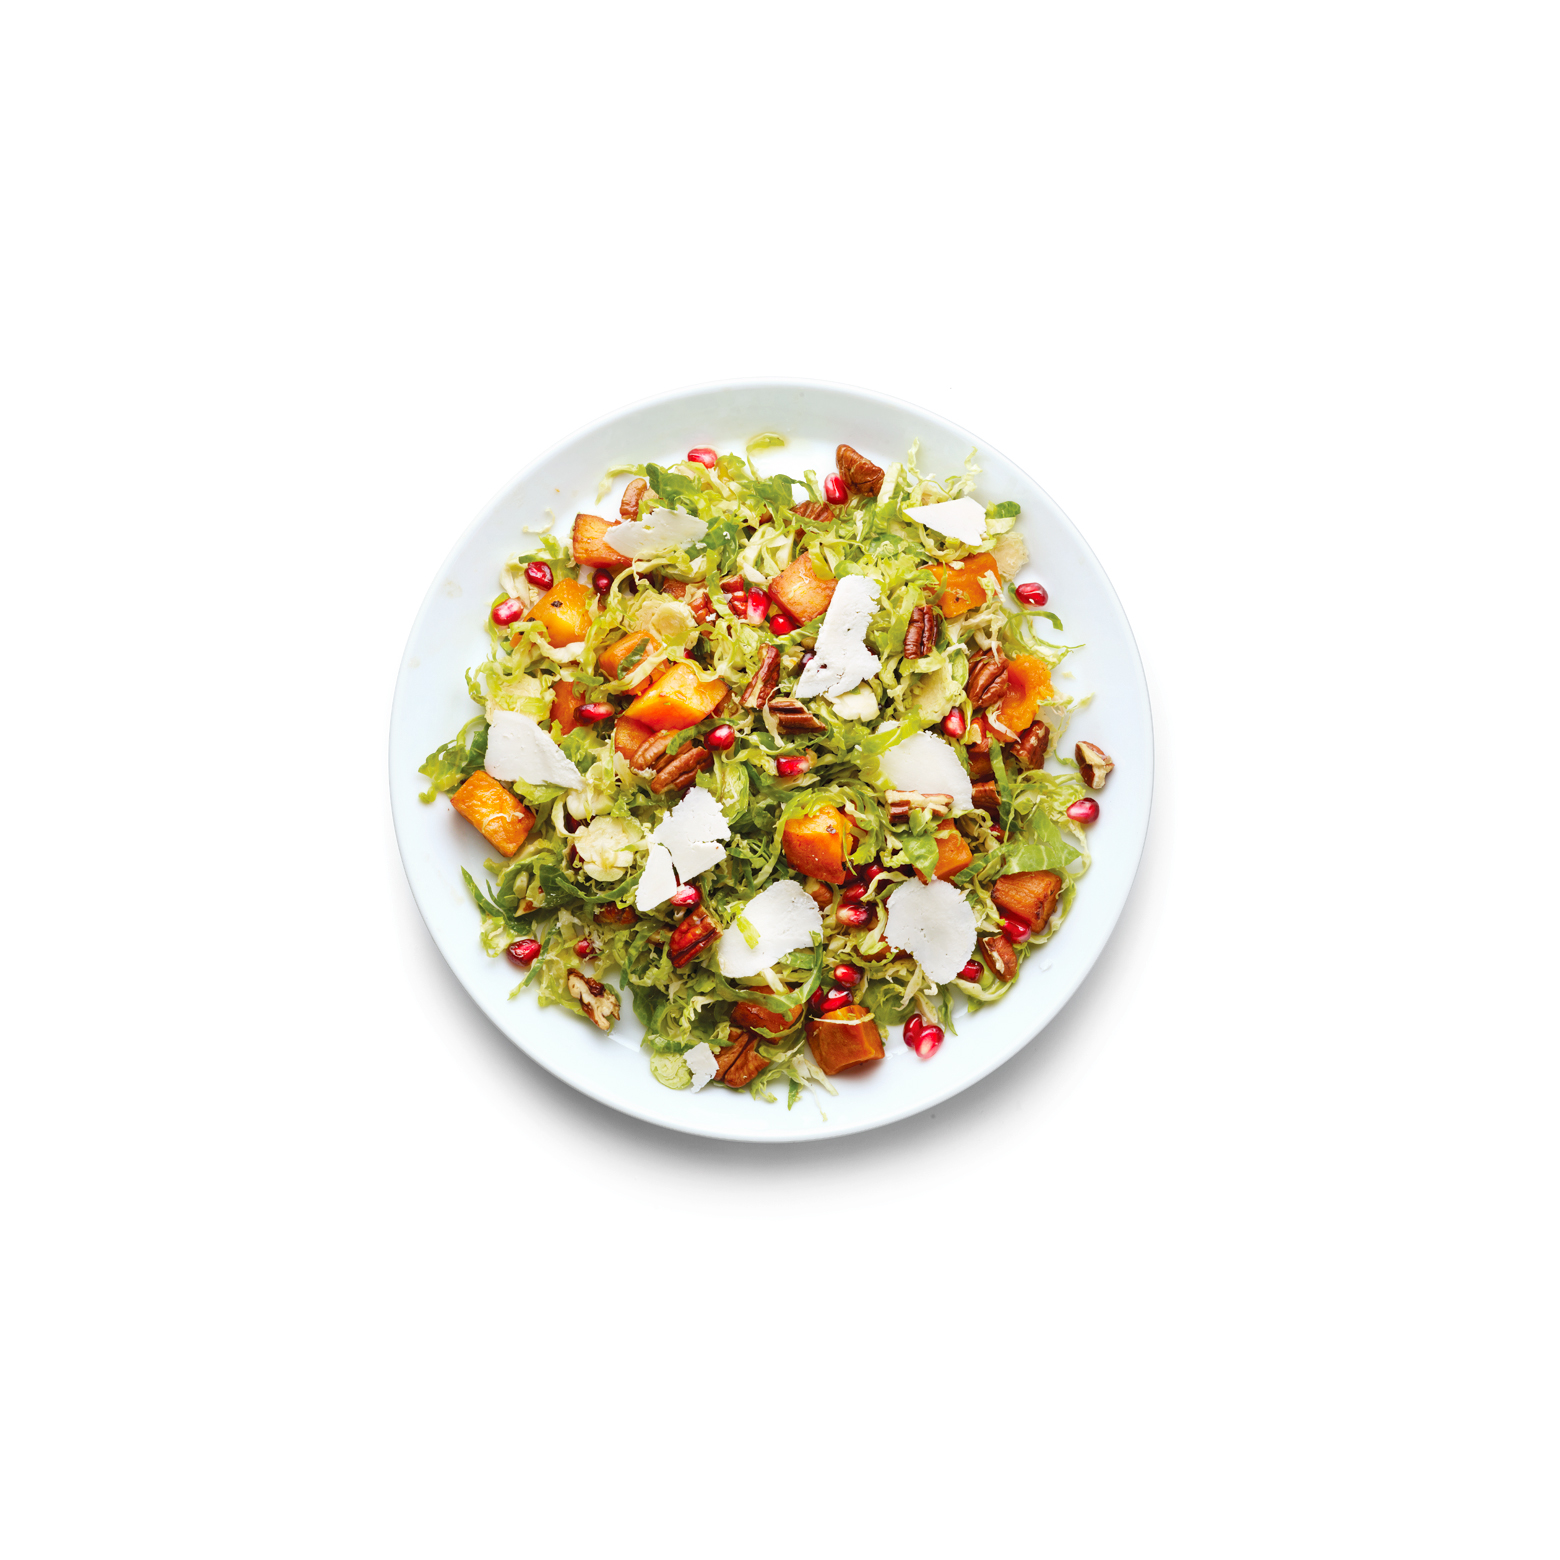 Thanksgiving Salad: Brussels Sprouts, Sweet Potato, and Pomegranate Seed Salad